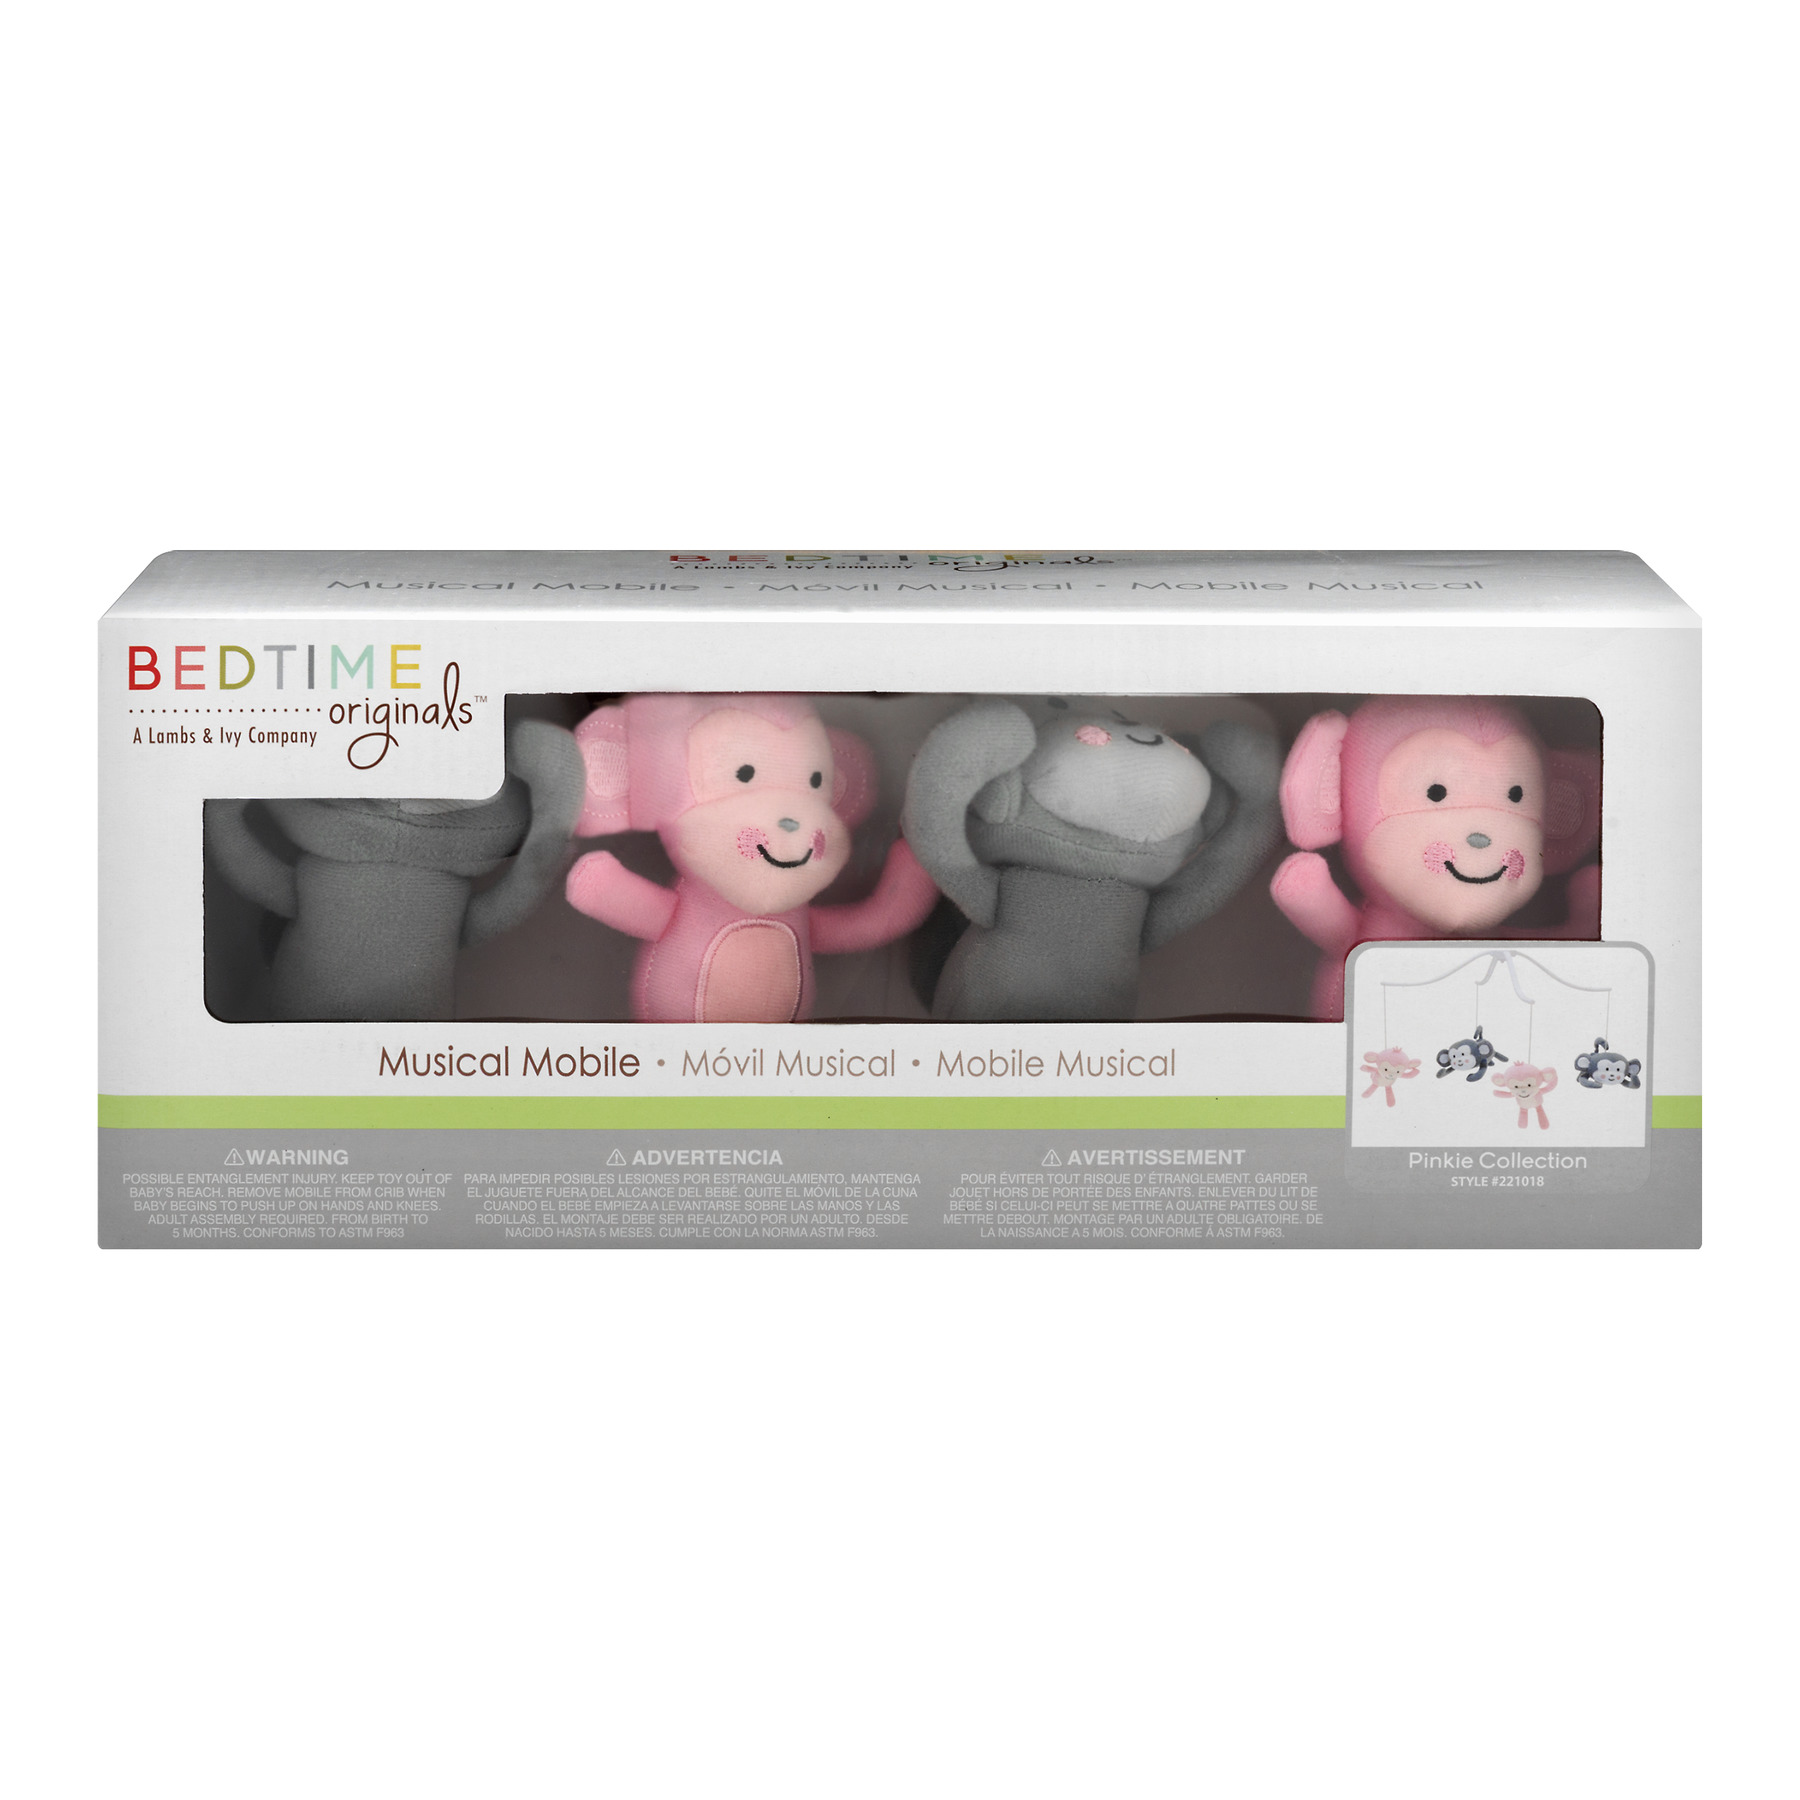 Bedtime Originals Pinkie Collection Musical Mobile